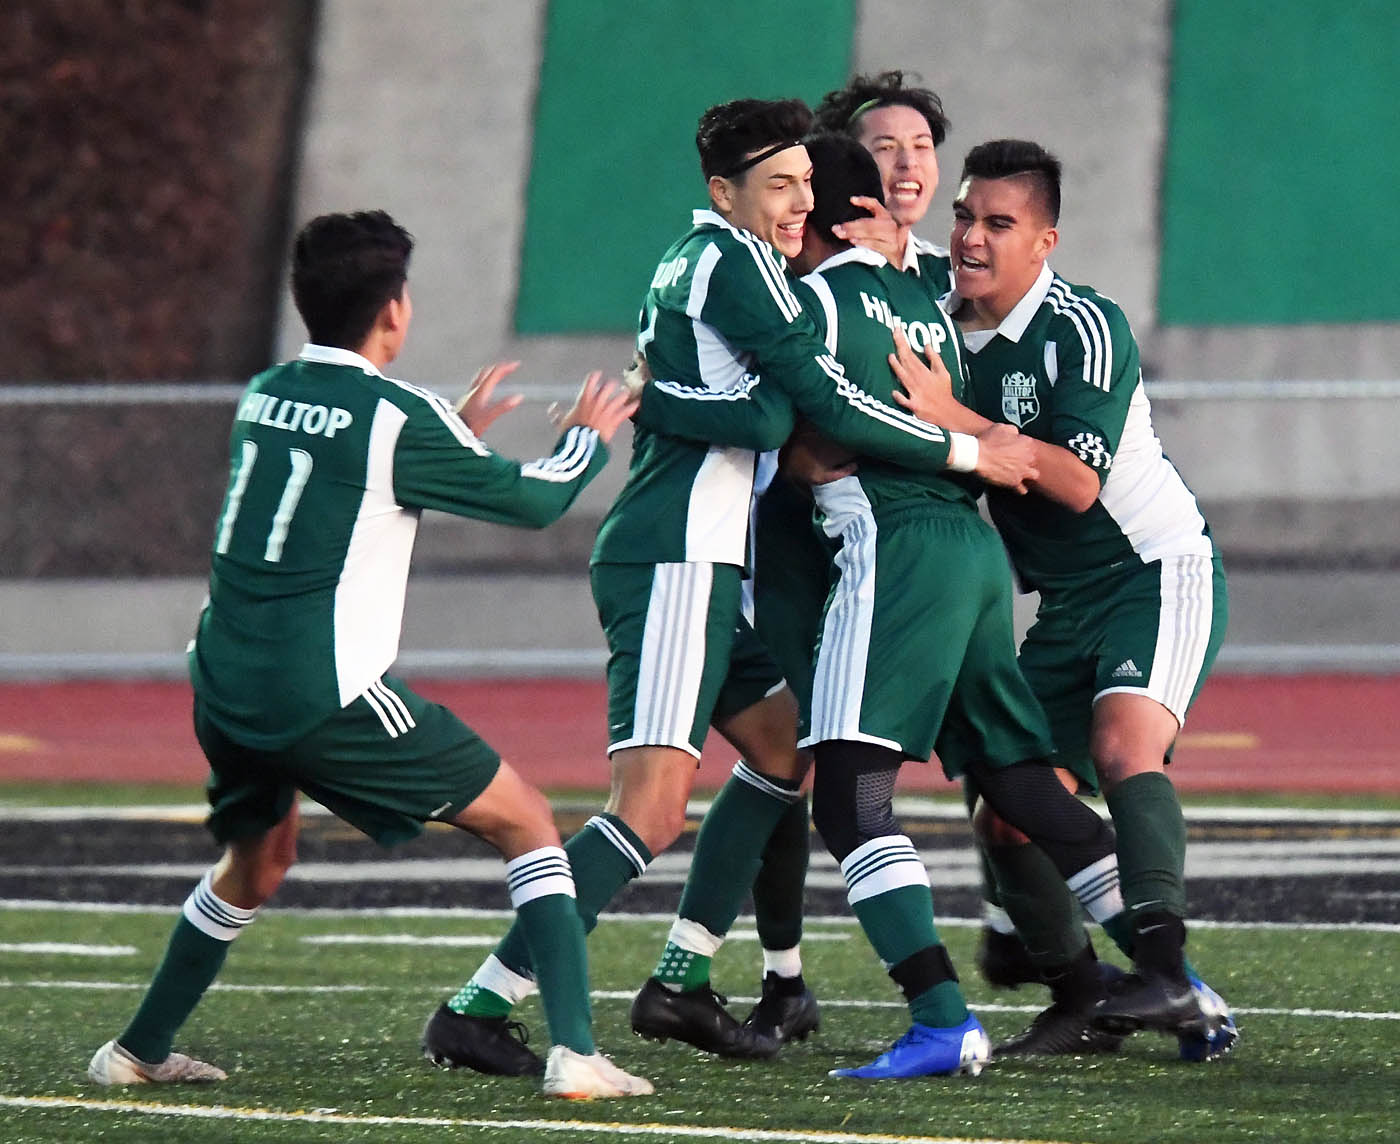 Four local prep soccer teams win tournament titles | The